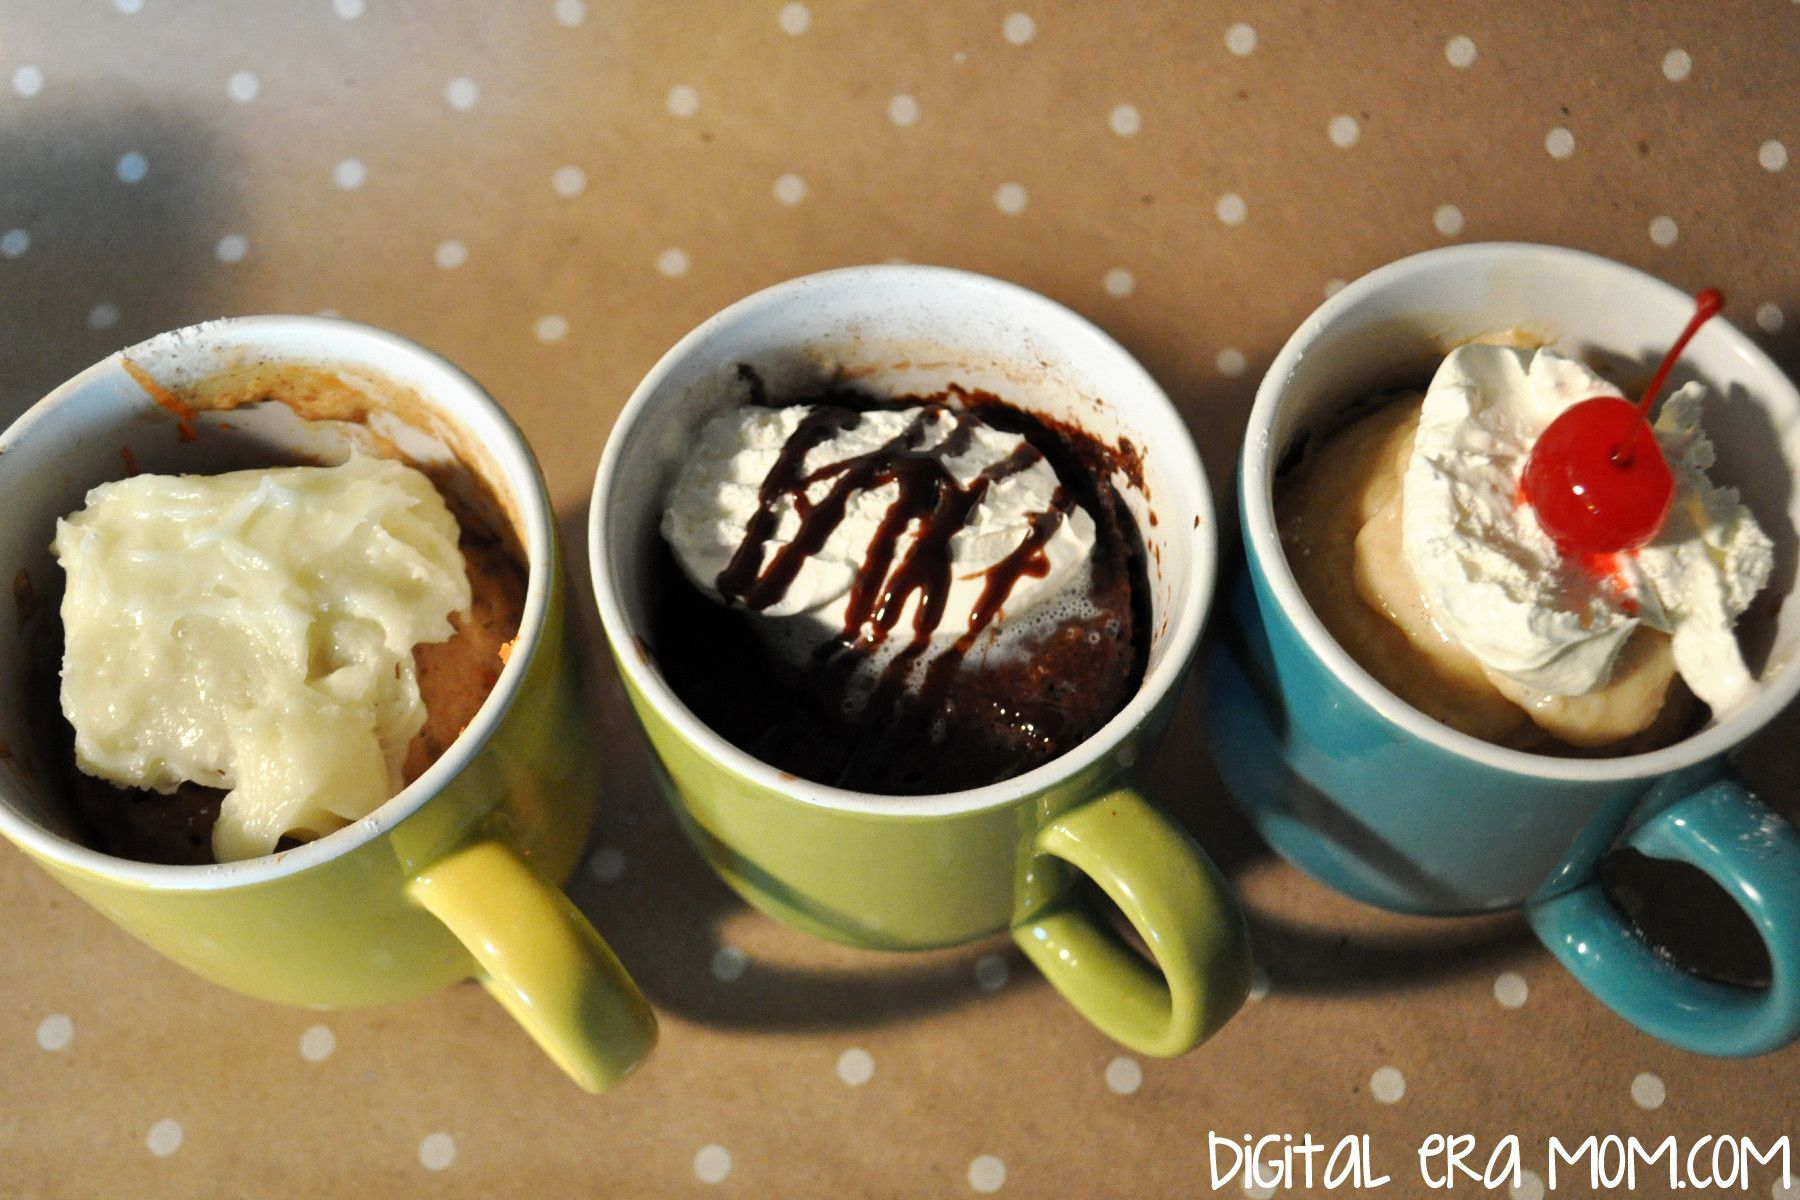 Cake In A Mug Recipes No Egg: Eggless Mug Cakes Replace Oil And Eggs With Applesauce